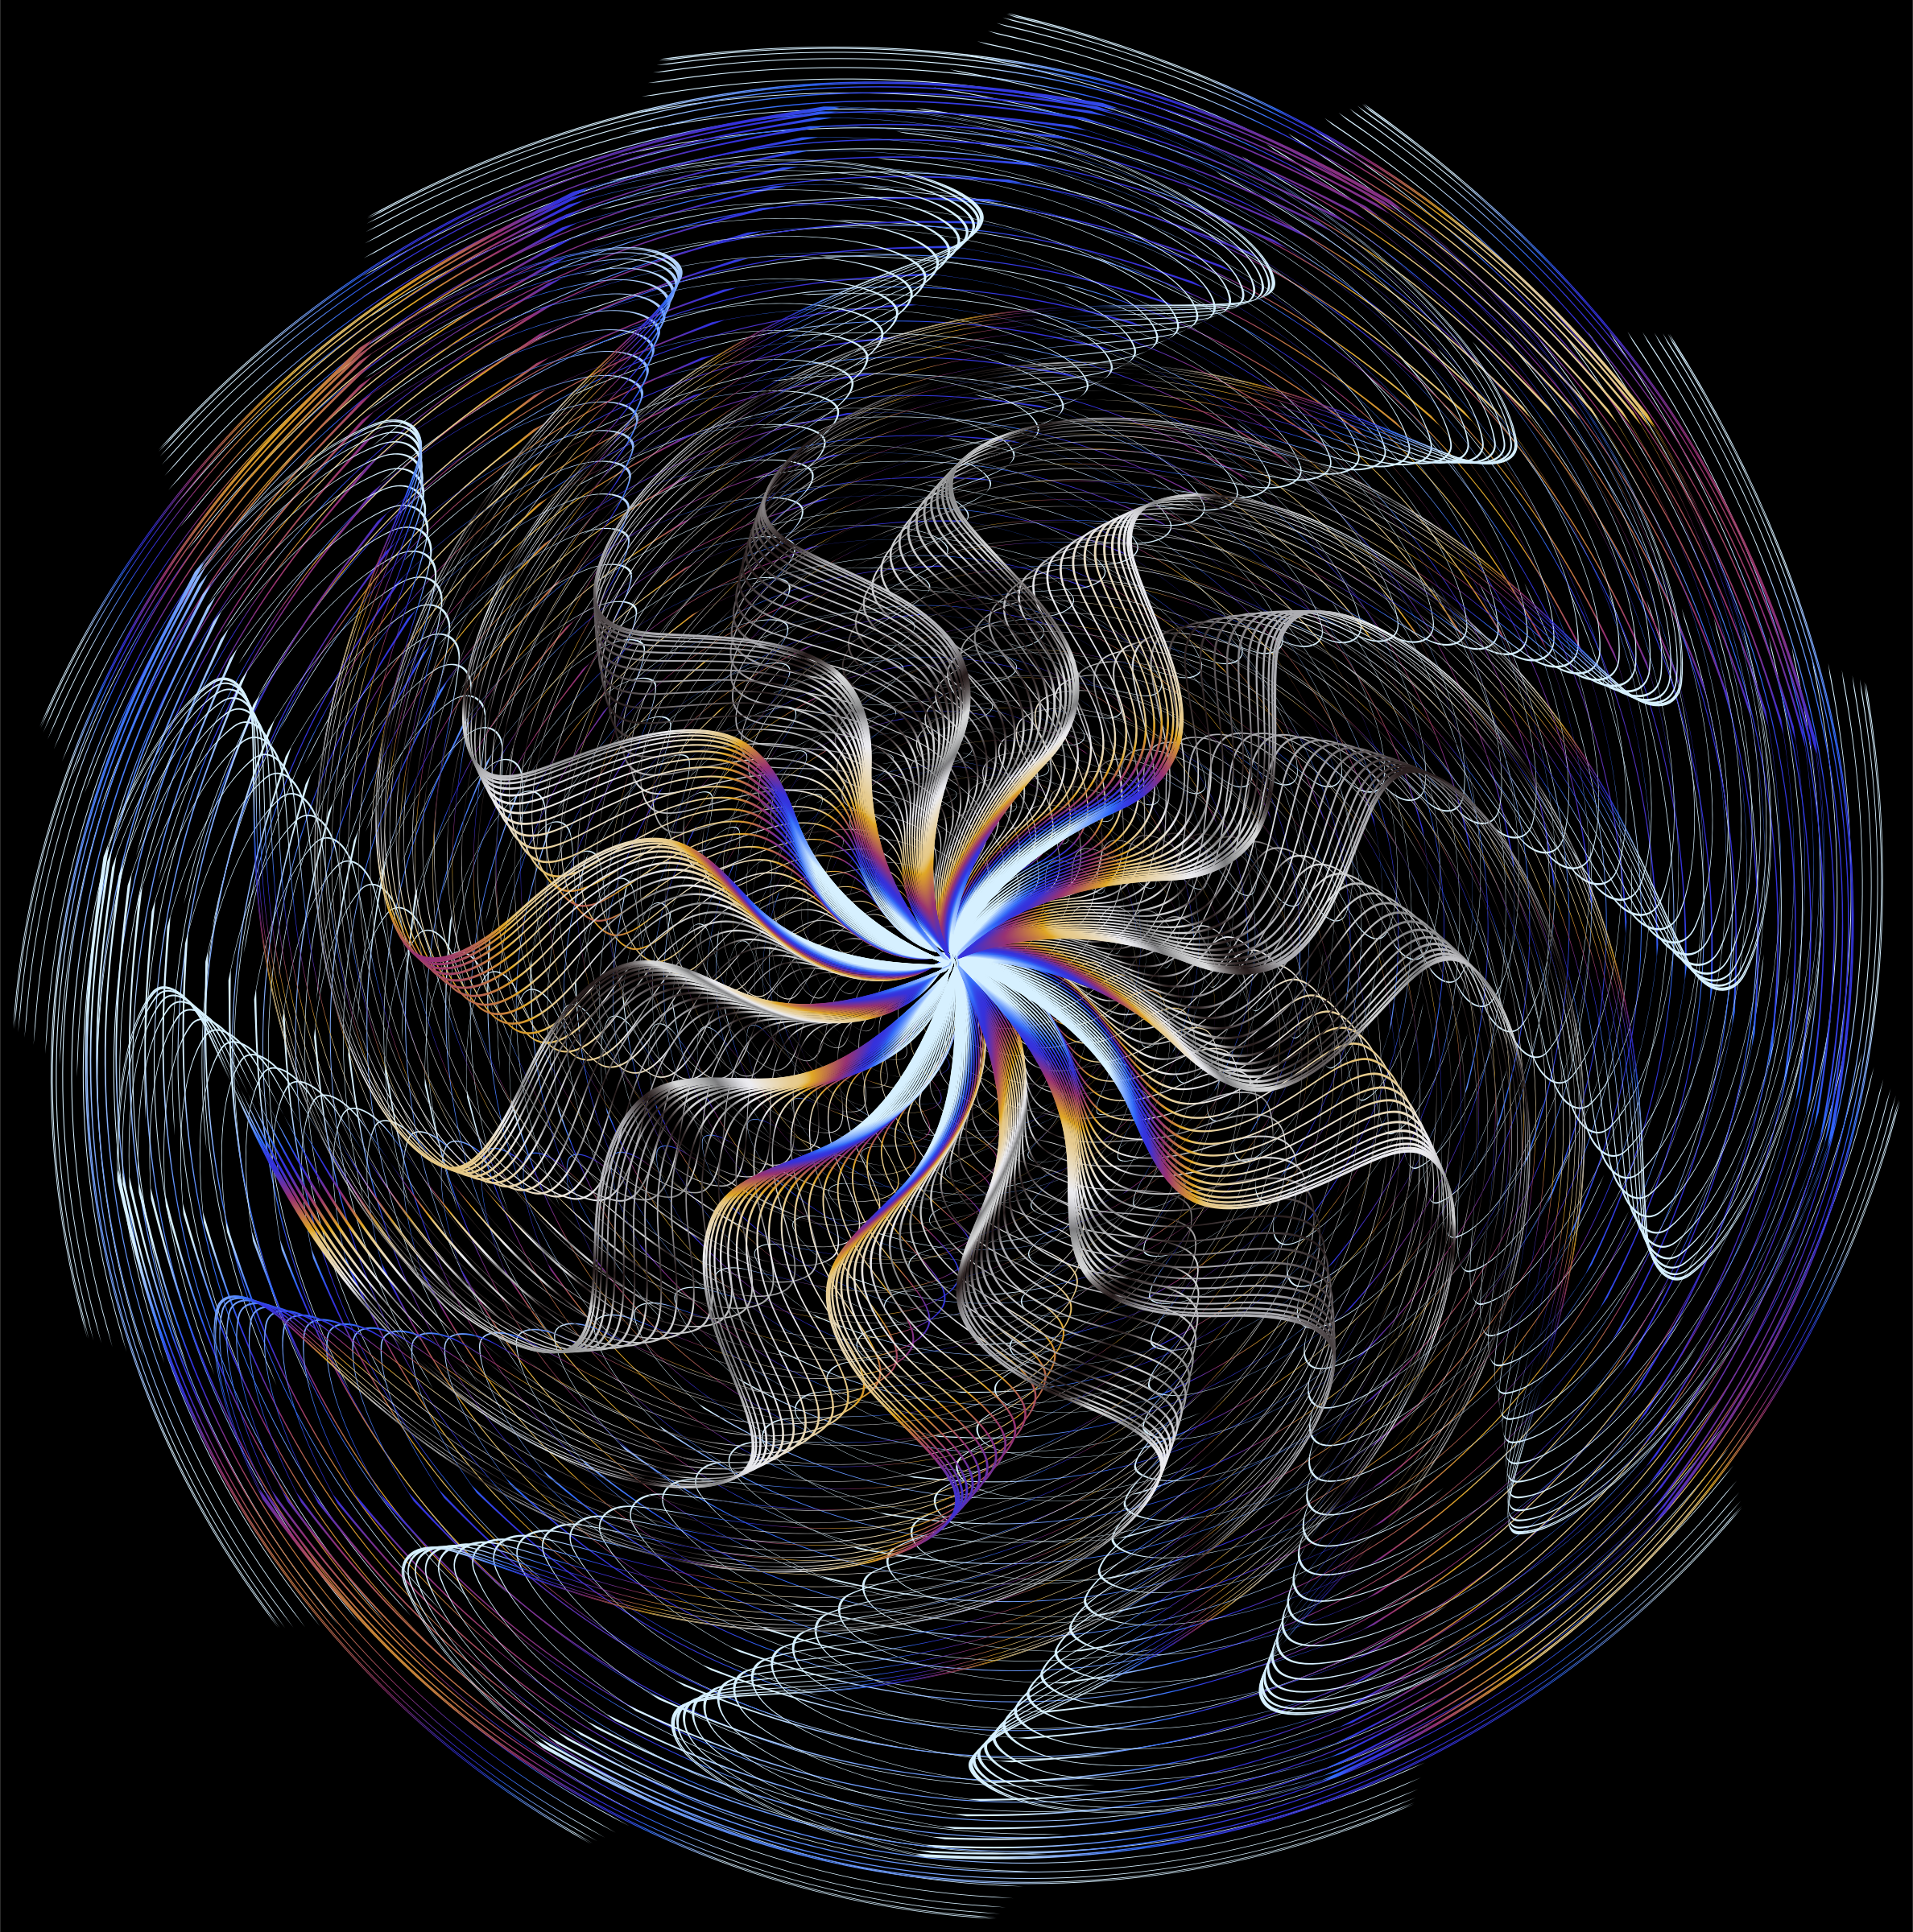 Colorful Wavy Vortex Line Art 7 by GDJ